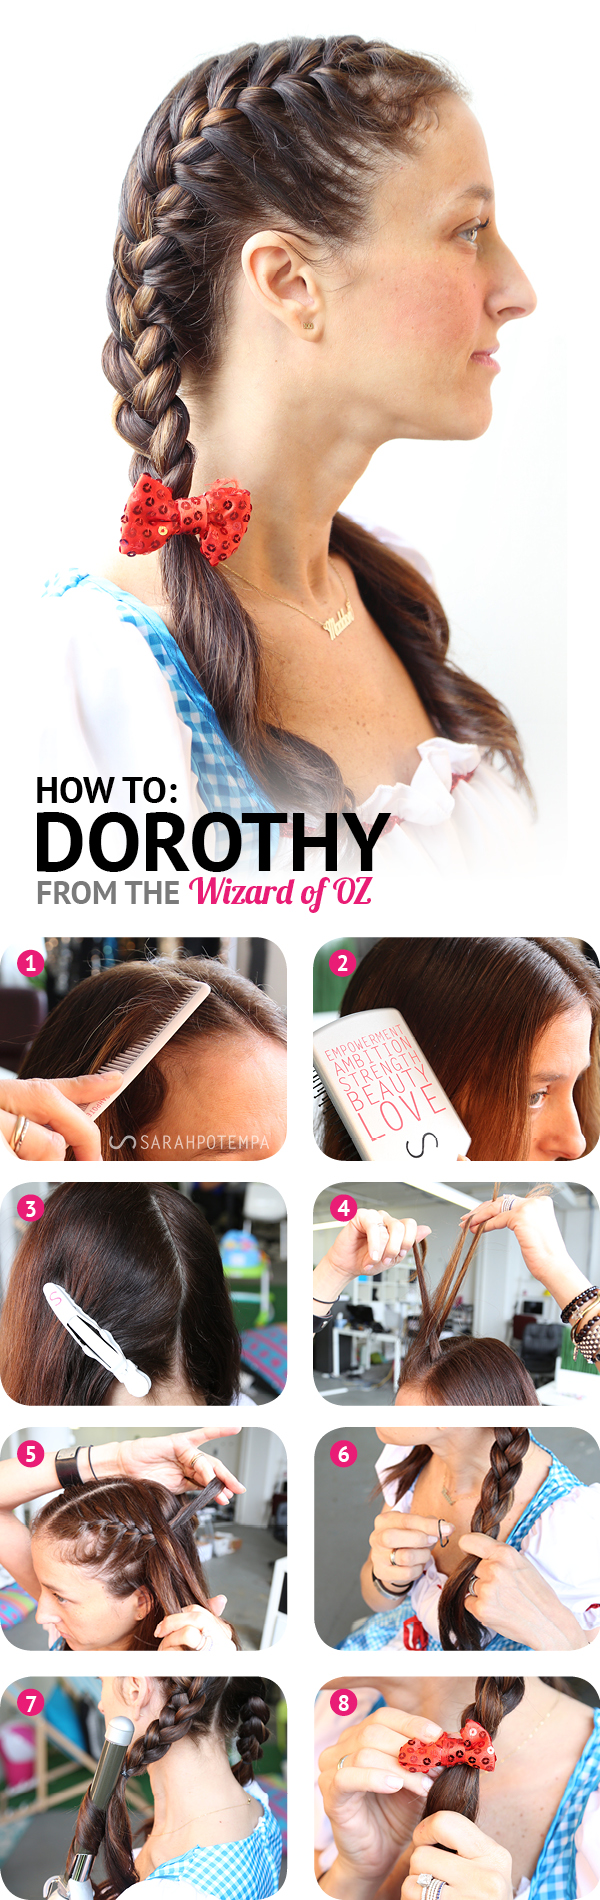 How To Dorothy From The Wizard Of Oz Wizard Of Oz Dorothy Wizard Of Oz Wizard